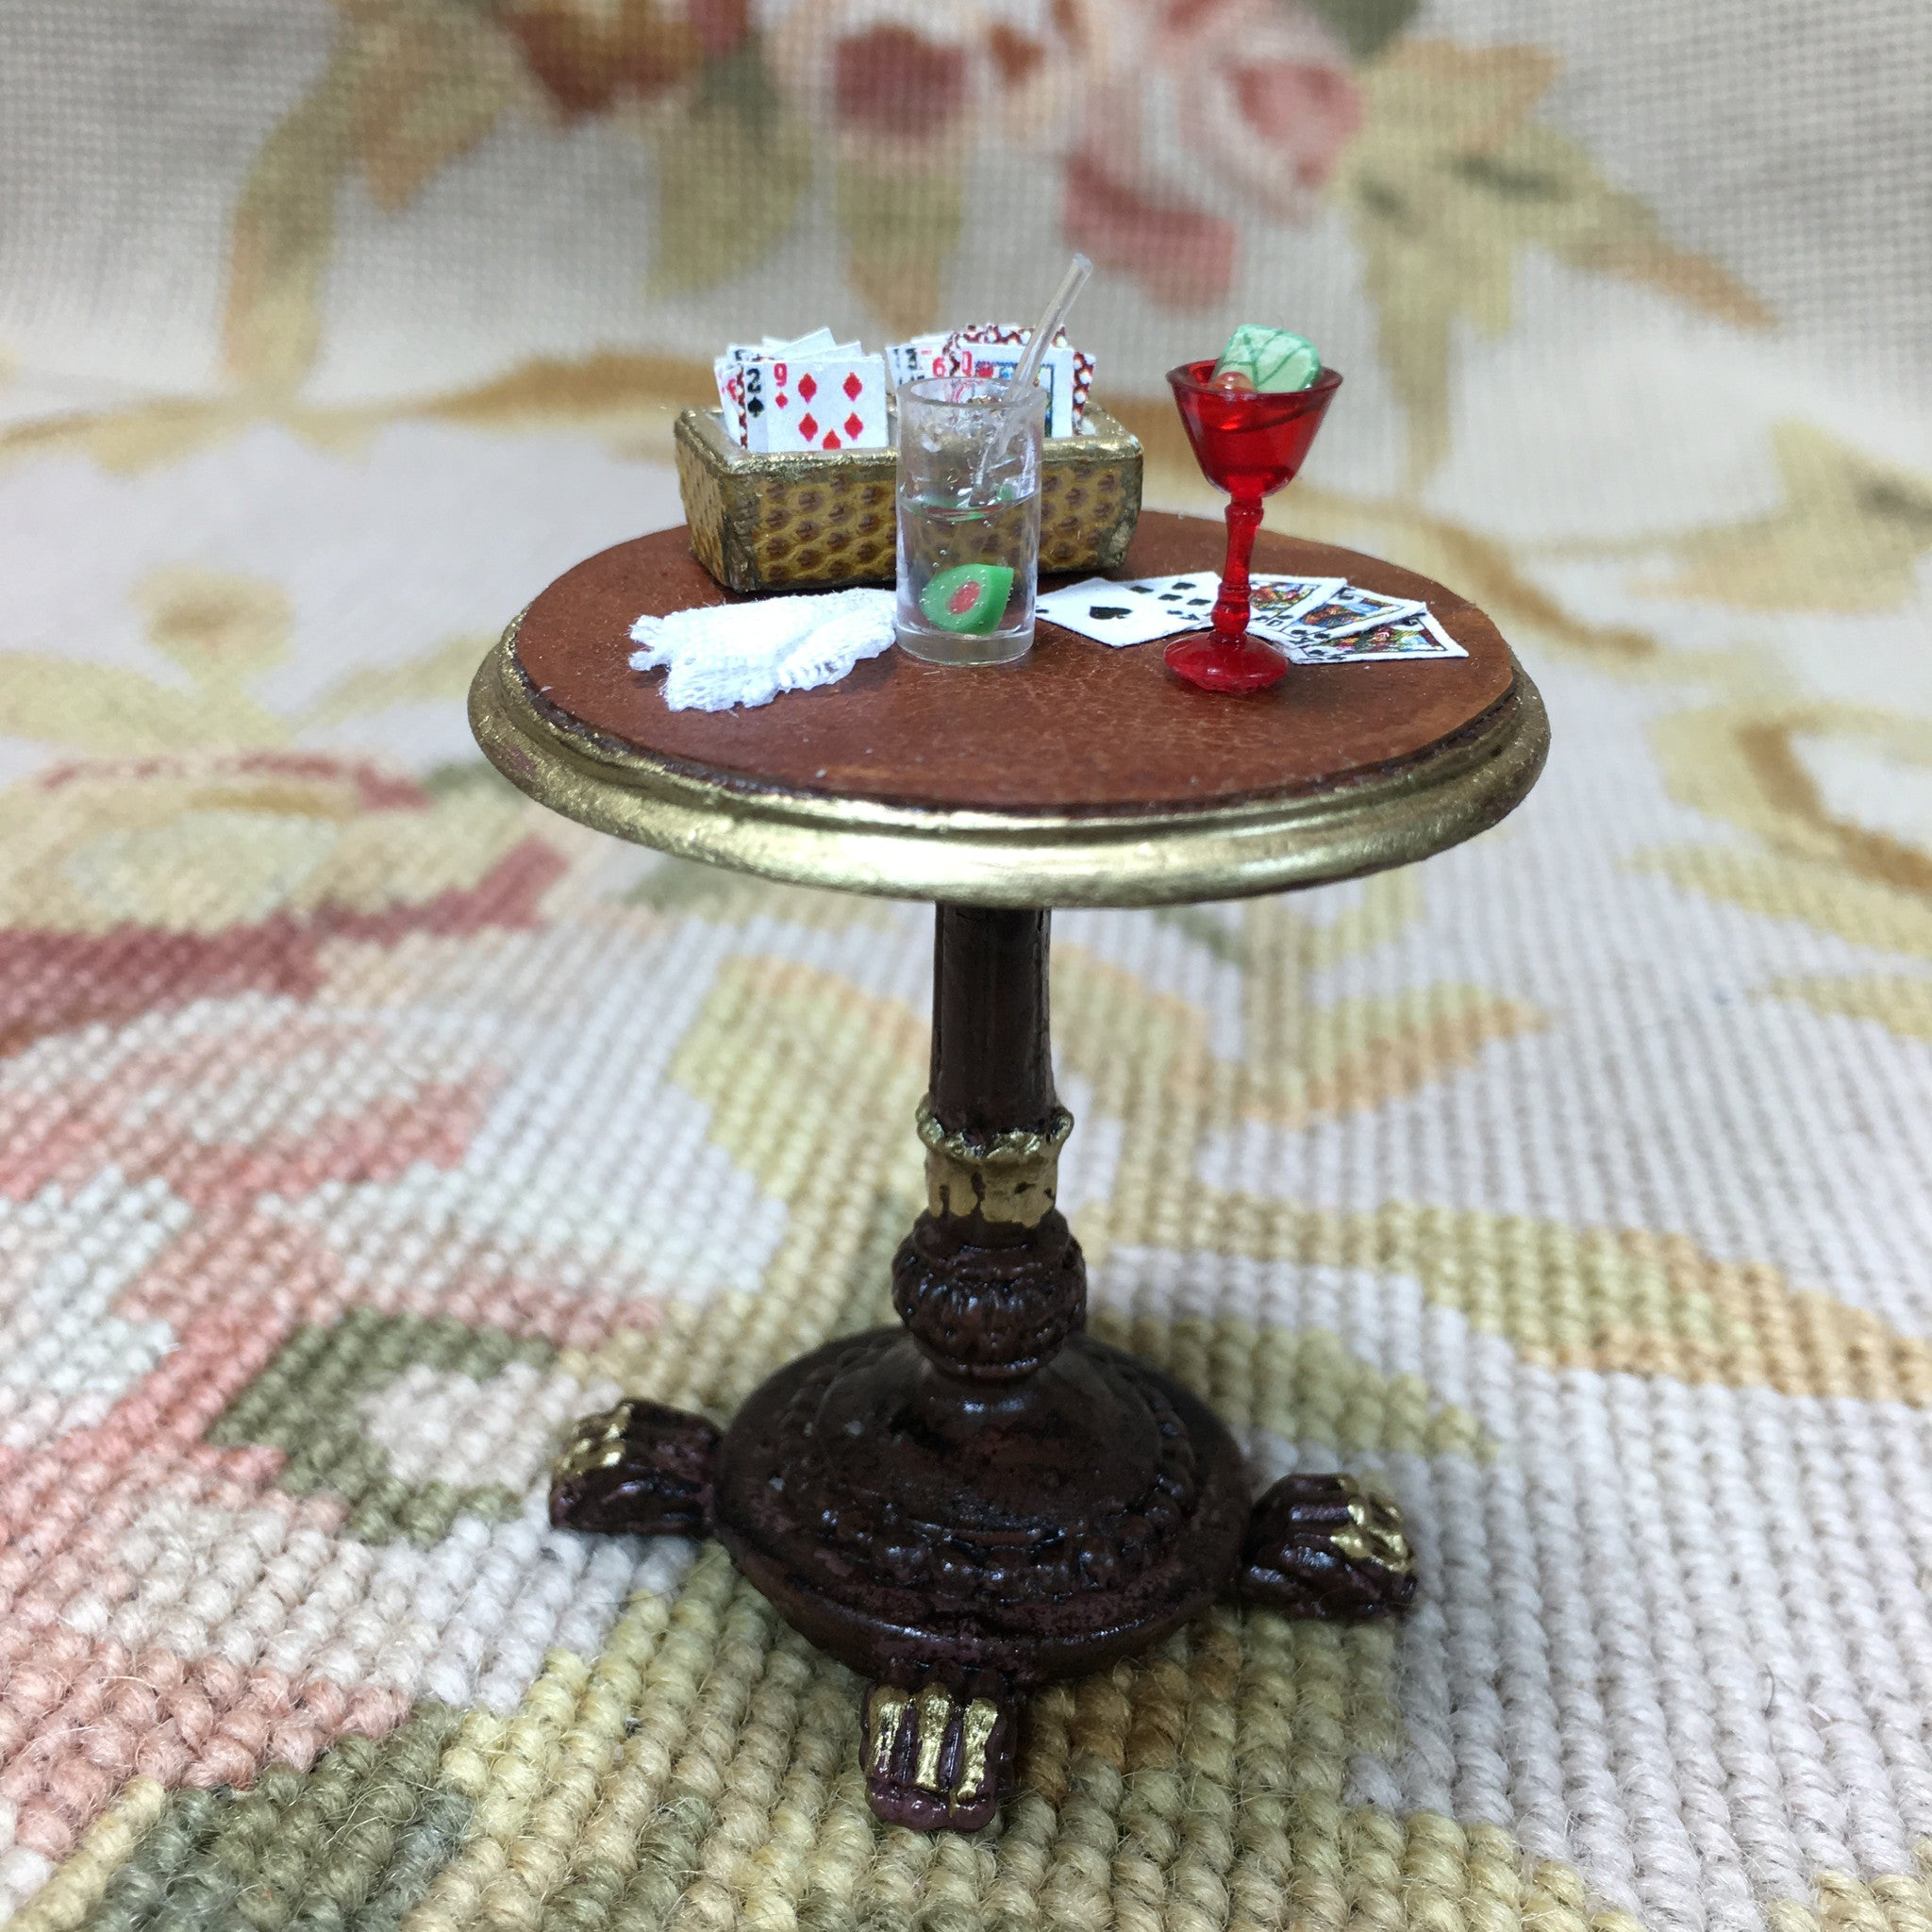 Table Stand Dressed with Card Box Napkin Bar 2 Cocktails 1:12 Scale SPECIAL ORDER Dollhouse Miniature